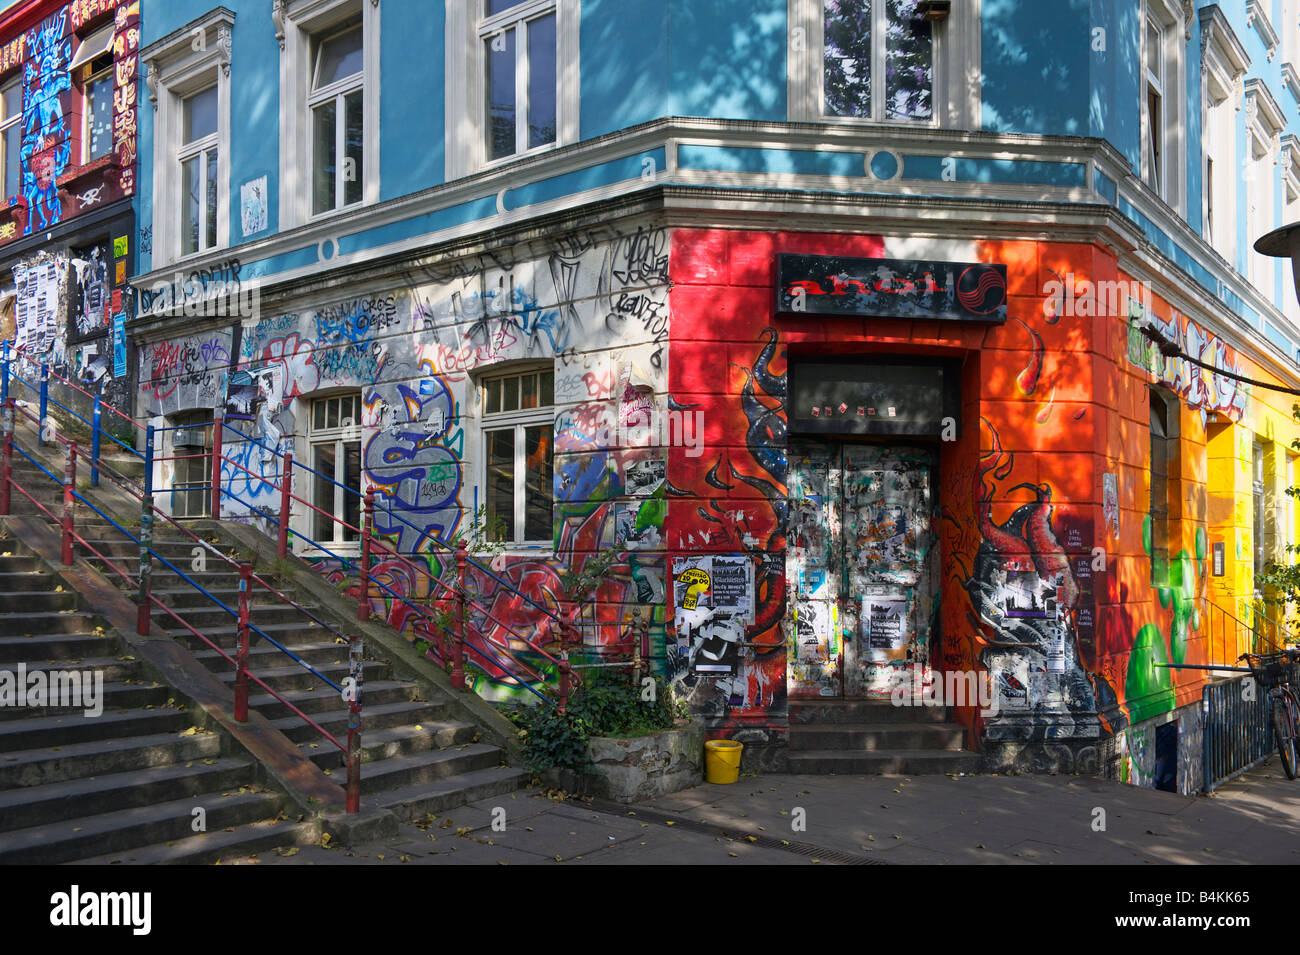 graffiti und wand kunst zu decken ein gesch ft und wohnungen in der st pauli bezirk hamburg. Black Bedroom Furniture Sets. Home Design Ideas